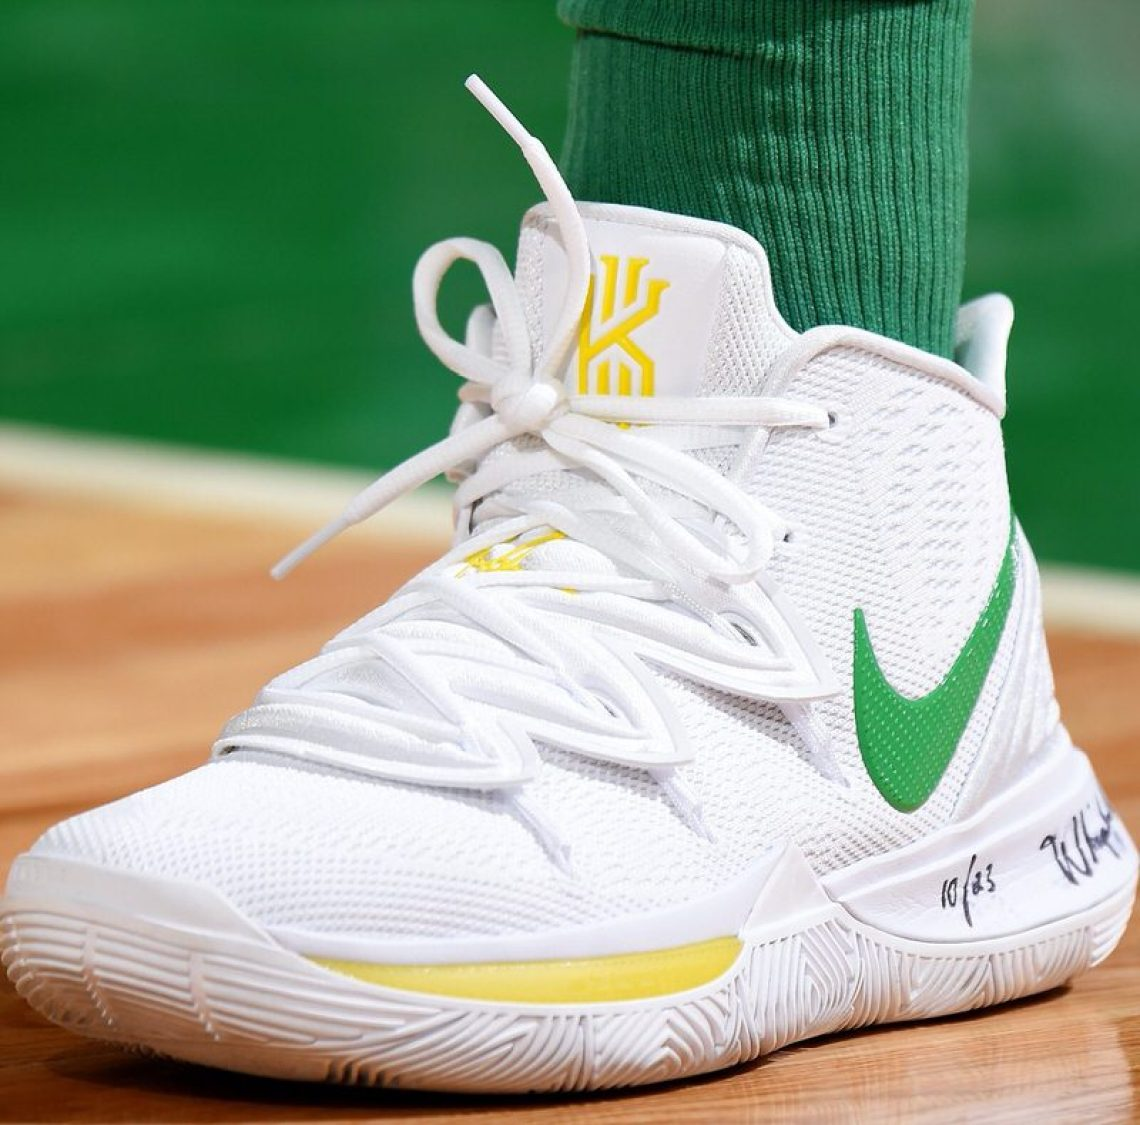 quality design b861a d0679 Kyrie Irving in the Nike Kyrie 5 Oregon PE vs. Denver Nuggets (Brian  Babineau NBAE via Getty Images)